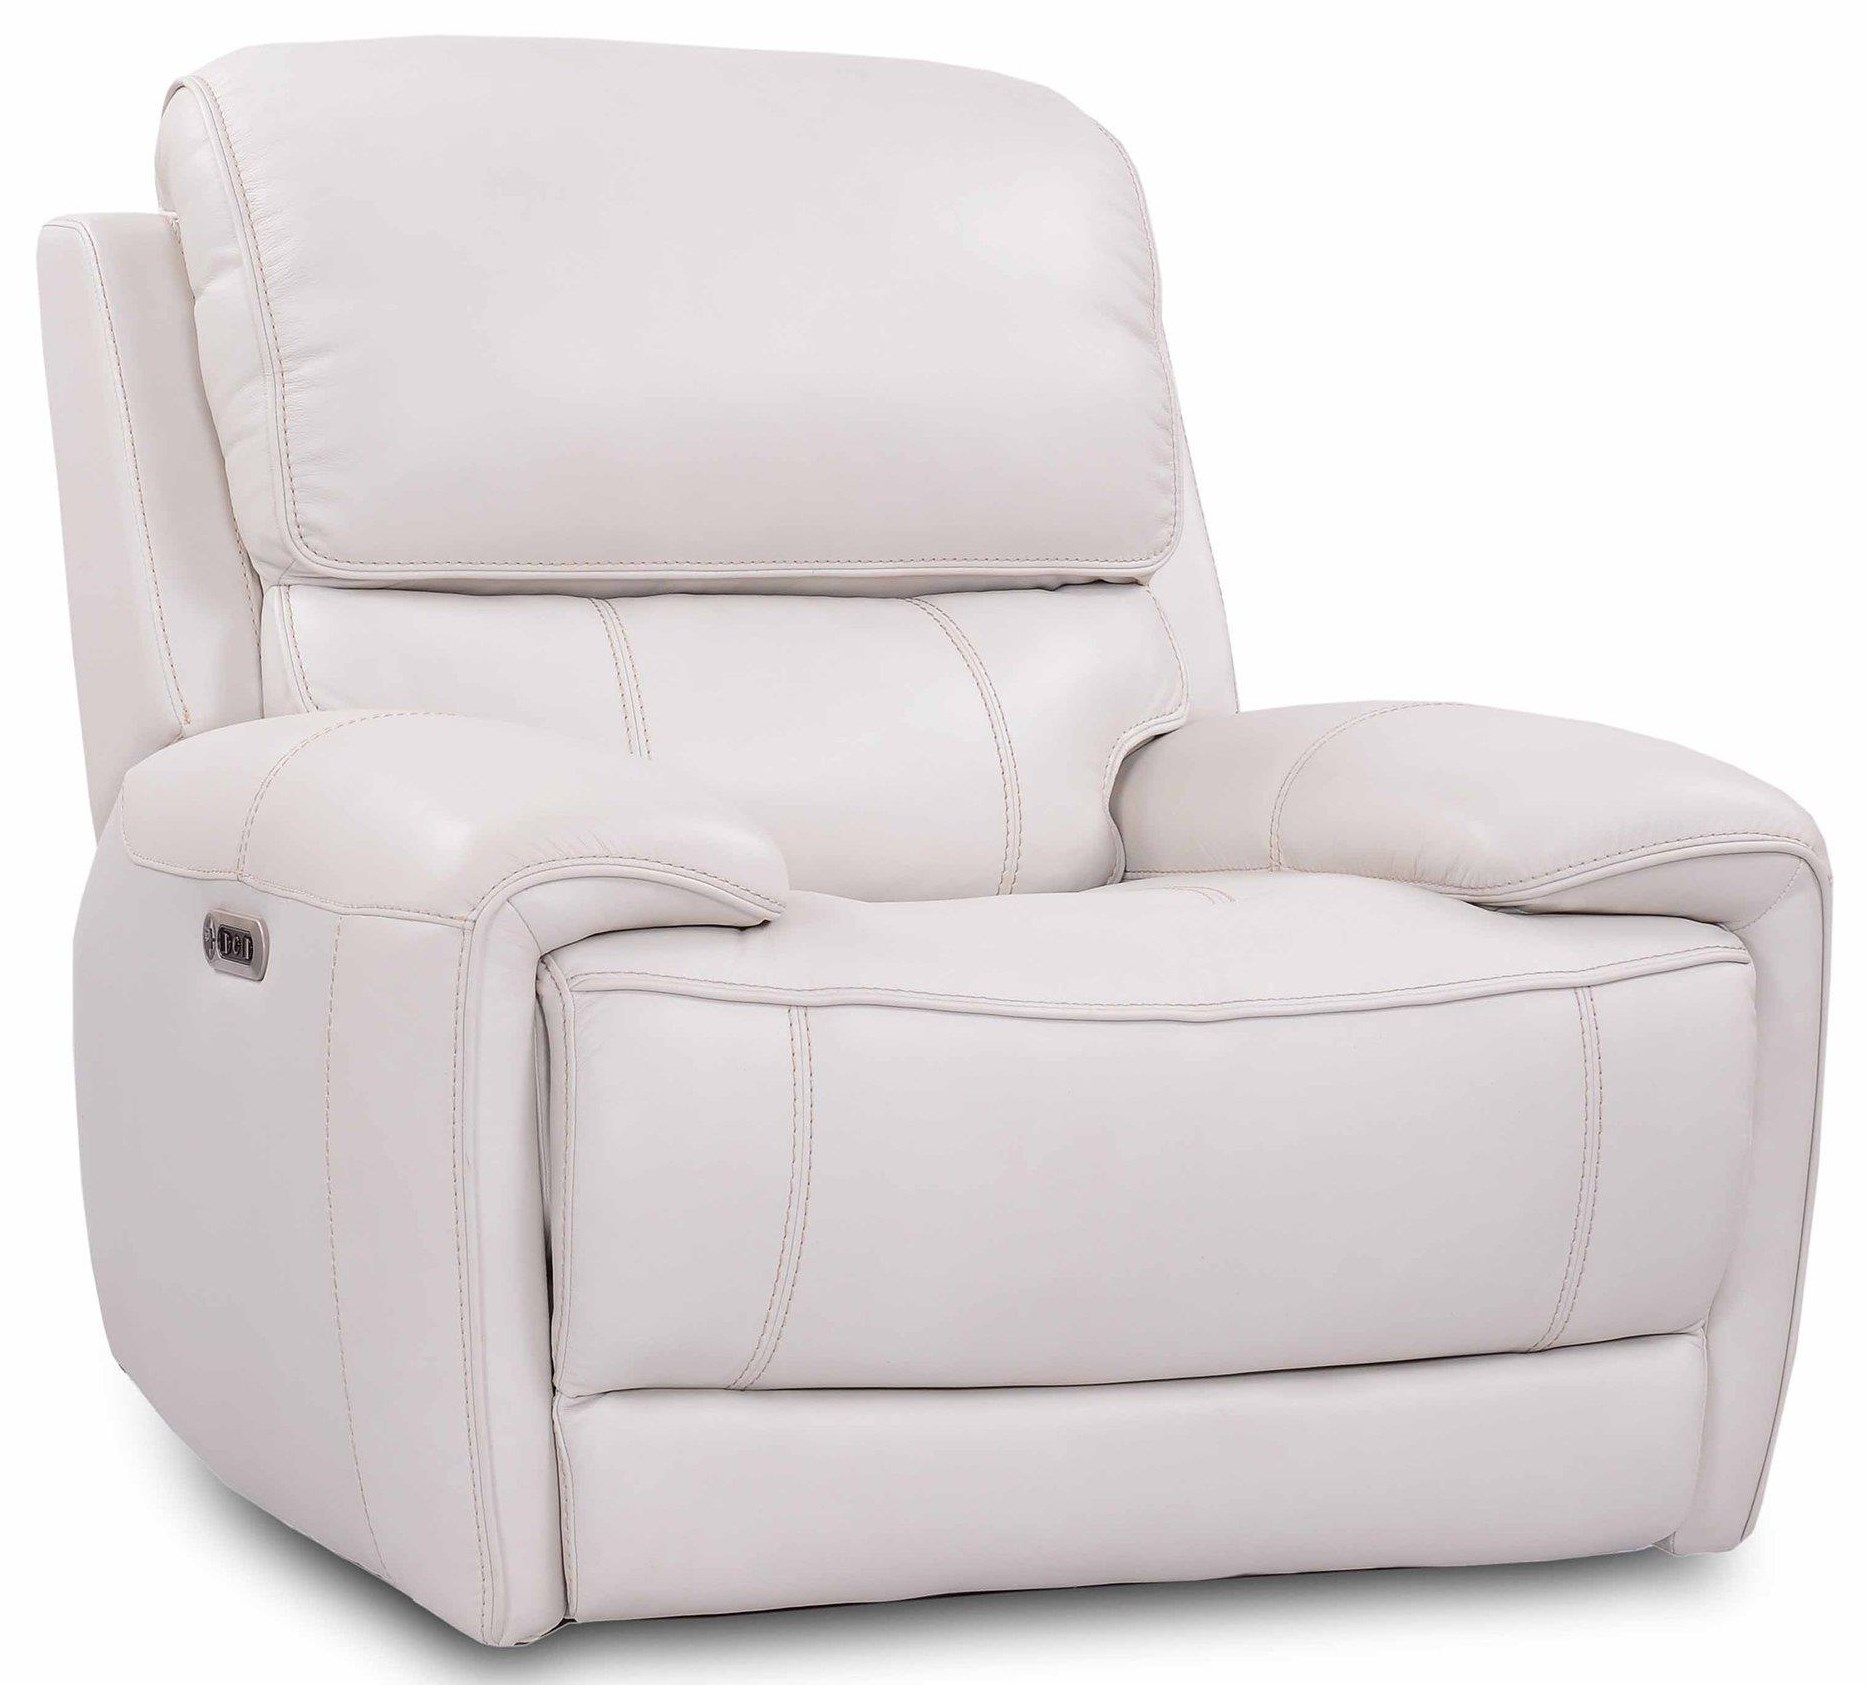 Empire POWER RECLINER WITH POWER HEADREST by Parker House at Johnny Janosik